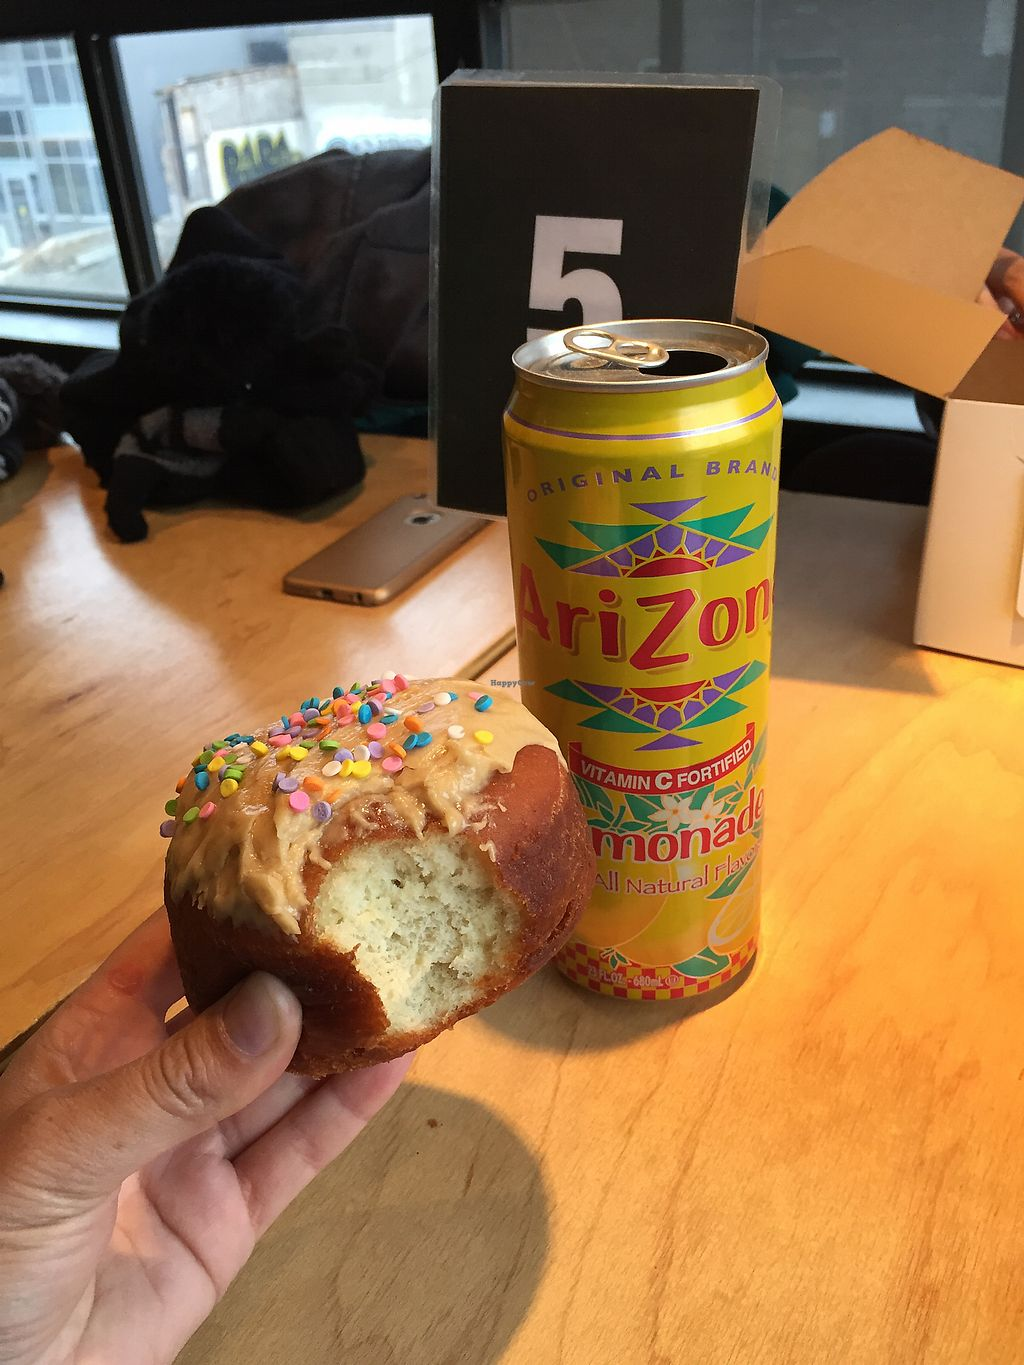 "Photo of Apiecalypse Now Pizza and Snack Bar  by <a href=""/members/profile/laurdanielle"" class=""title__title"">laurdanielle</a> <br/>Peanut butter donut and lemonade <br/> December 24, 2017  - <a href='/contact/abuse/image/58573/338703'>Report</a>"